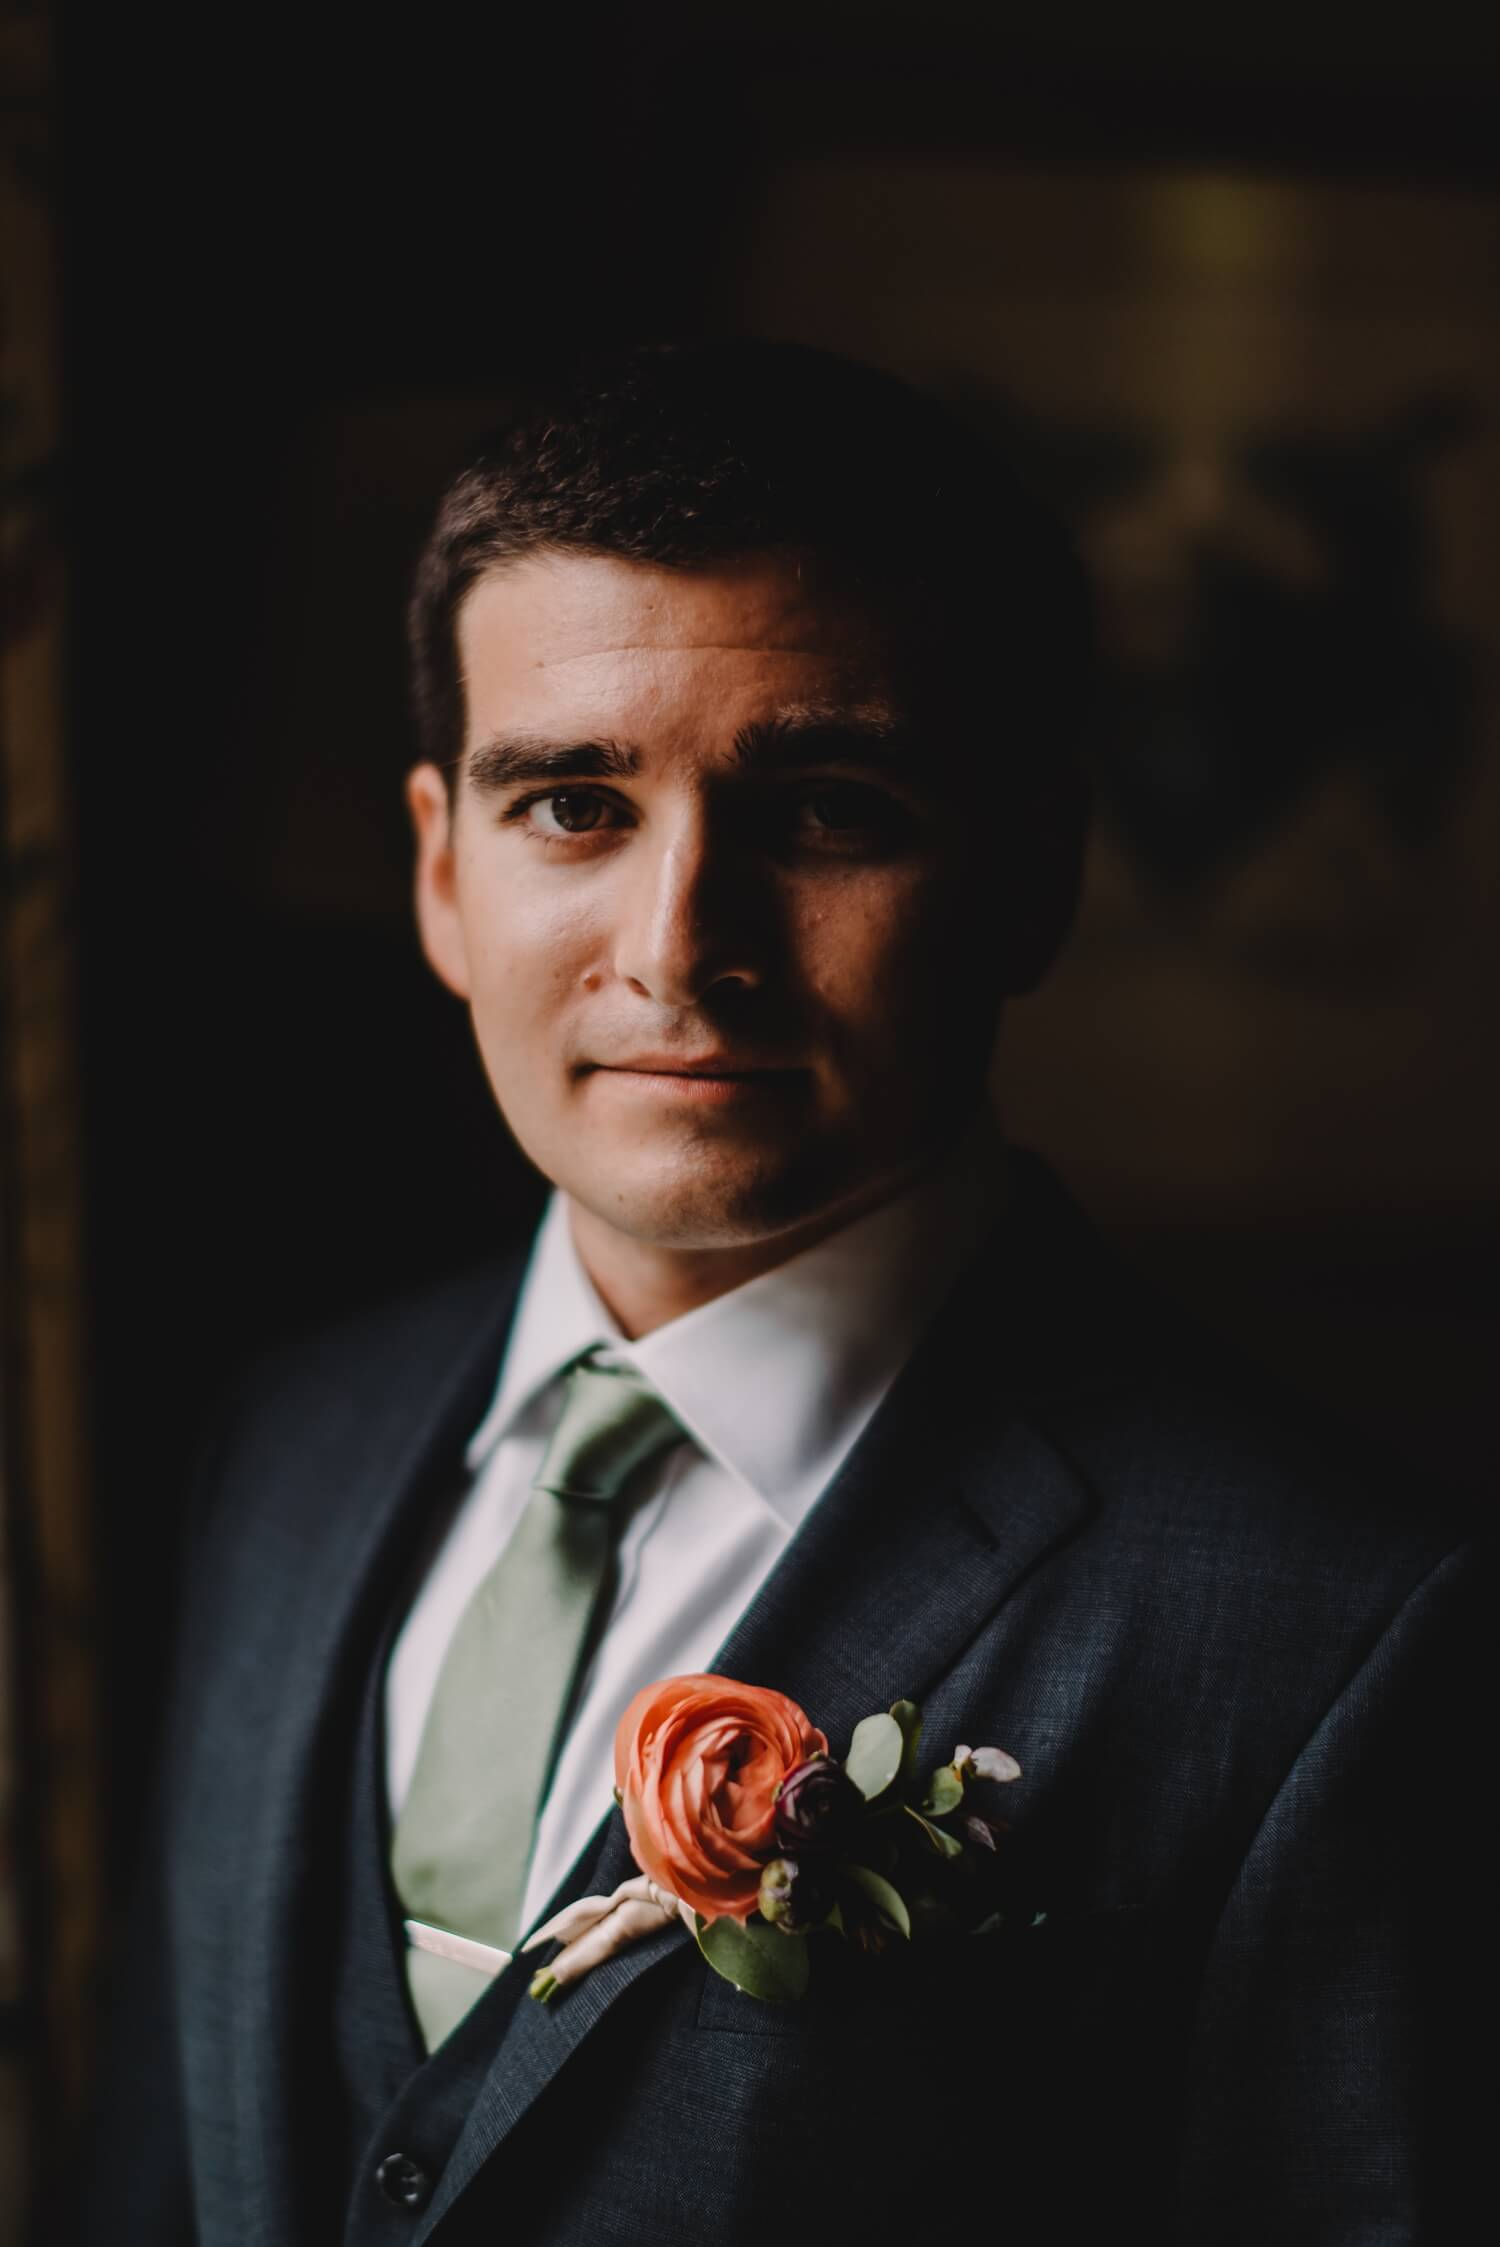 Groom Portrait, The Women's Club of Evanston Wedding Photographer - The Adamkovi, Chicago wedding Photographer